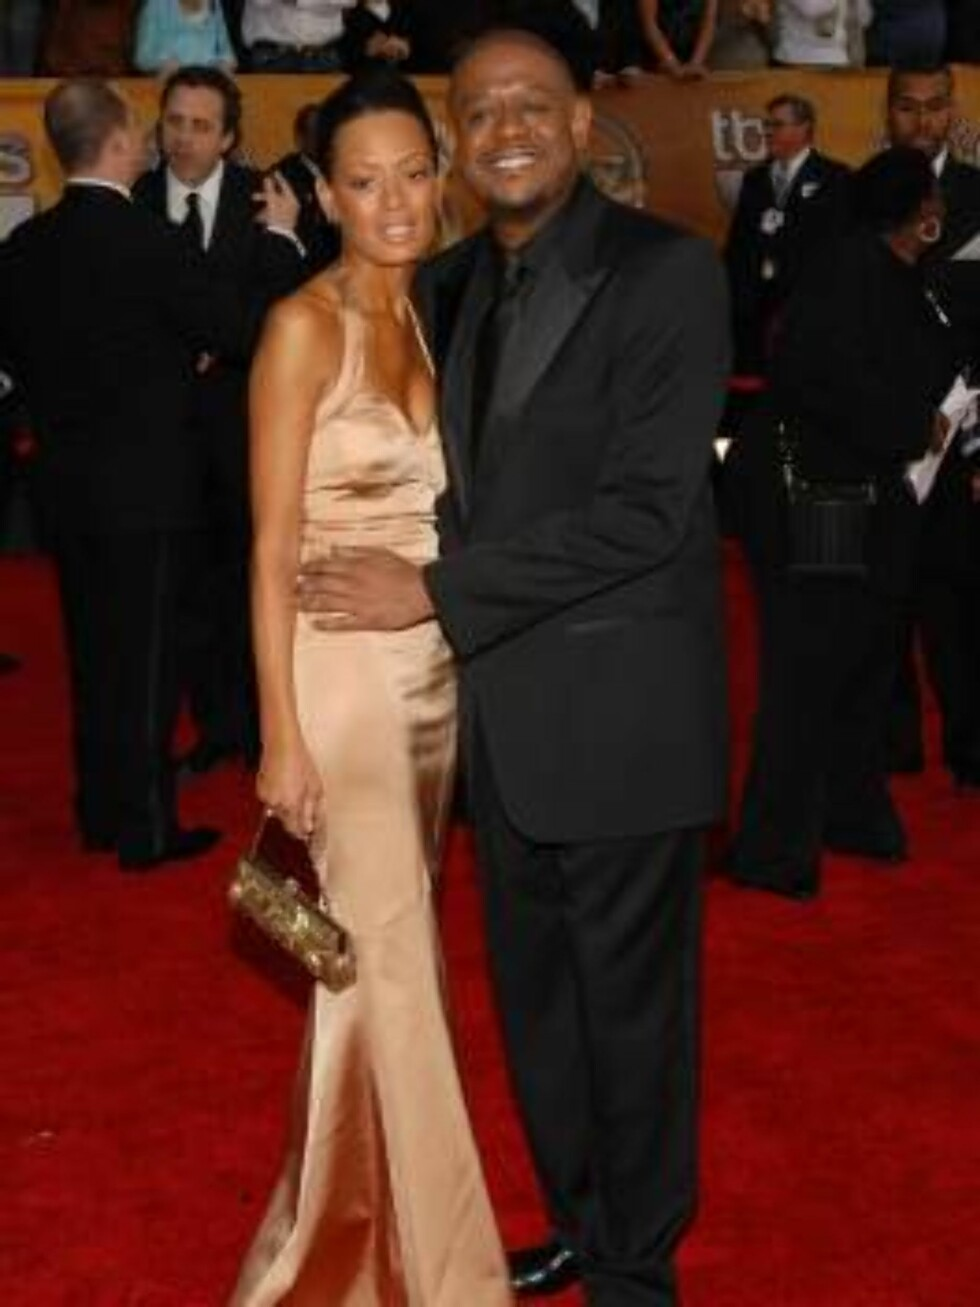 LOS ANGELES 2007-01-28.  Forest Whitaker and Keisha Whitaker at the 13th Annual Screen Actors Guild Awards held at the Shrine Auditorium in Los Angeles on January 28th, 2007.   Photo by Lionel Hahn/AbacaUsa Code: 4001/A35886  COPYRIGHT STELLA PICTURES Foto: Stella Pictures